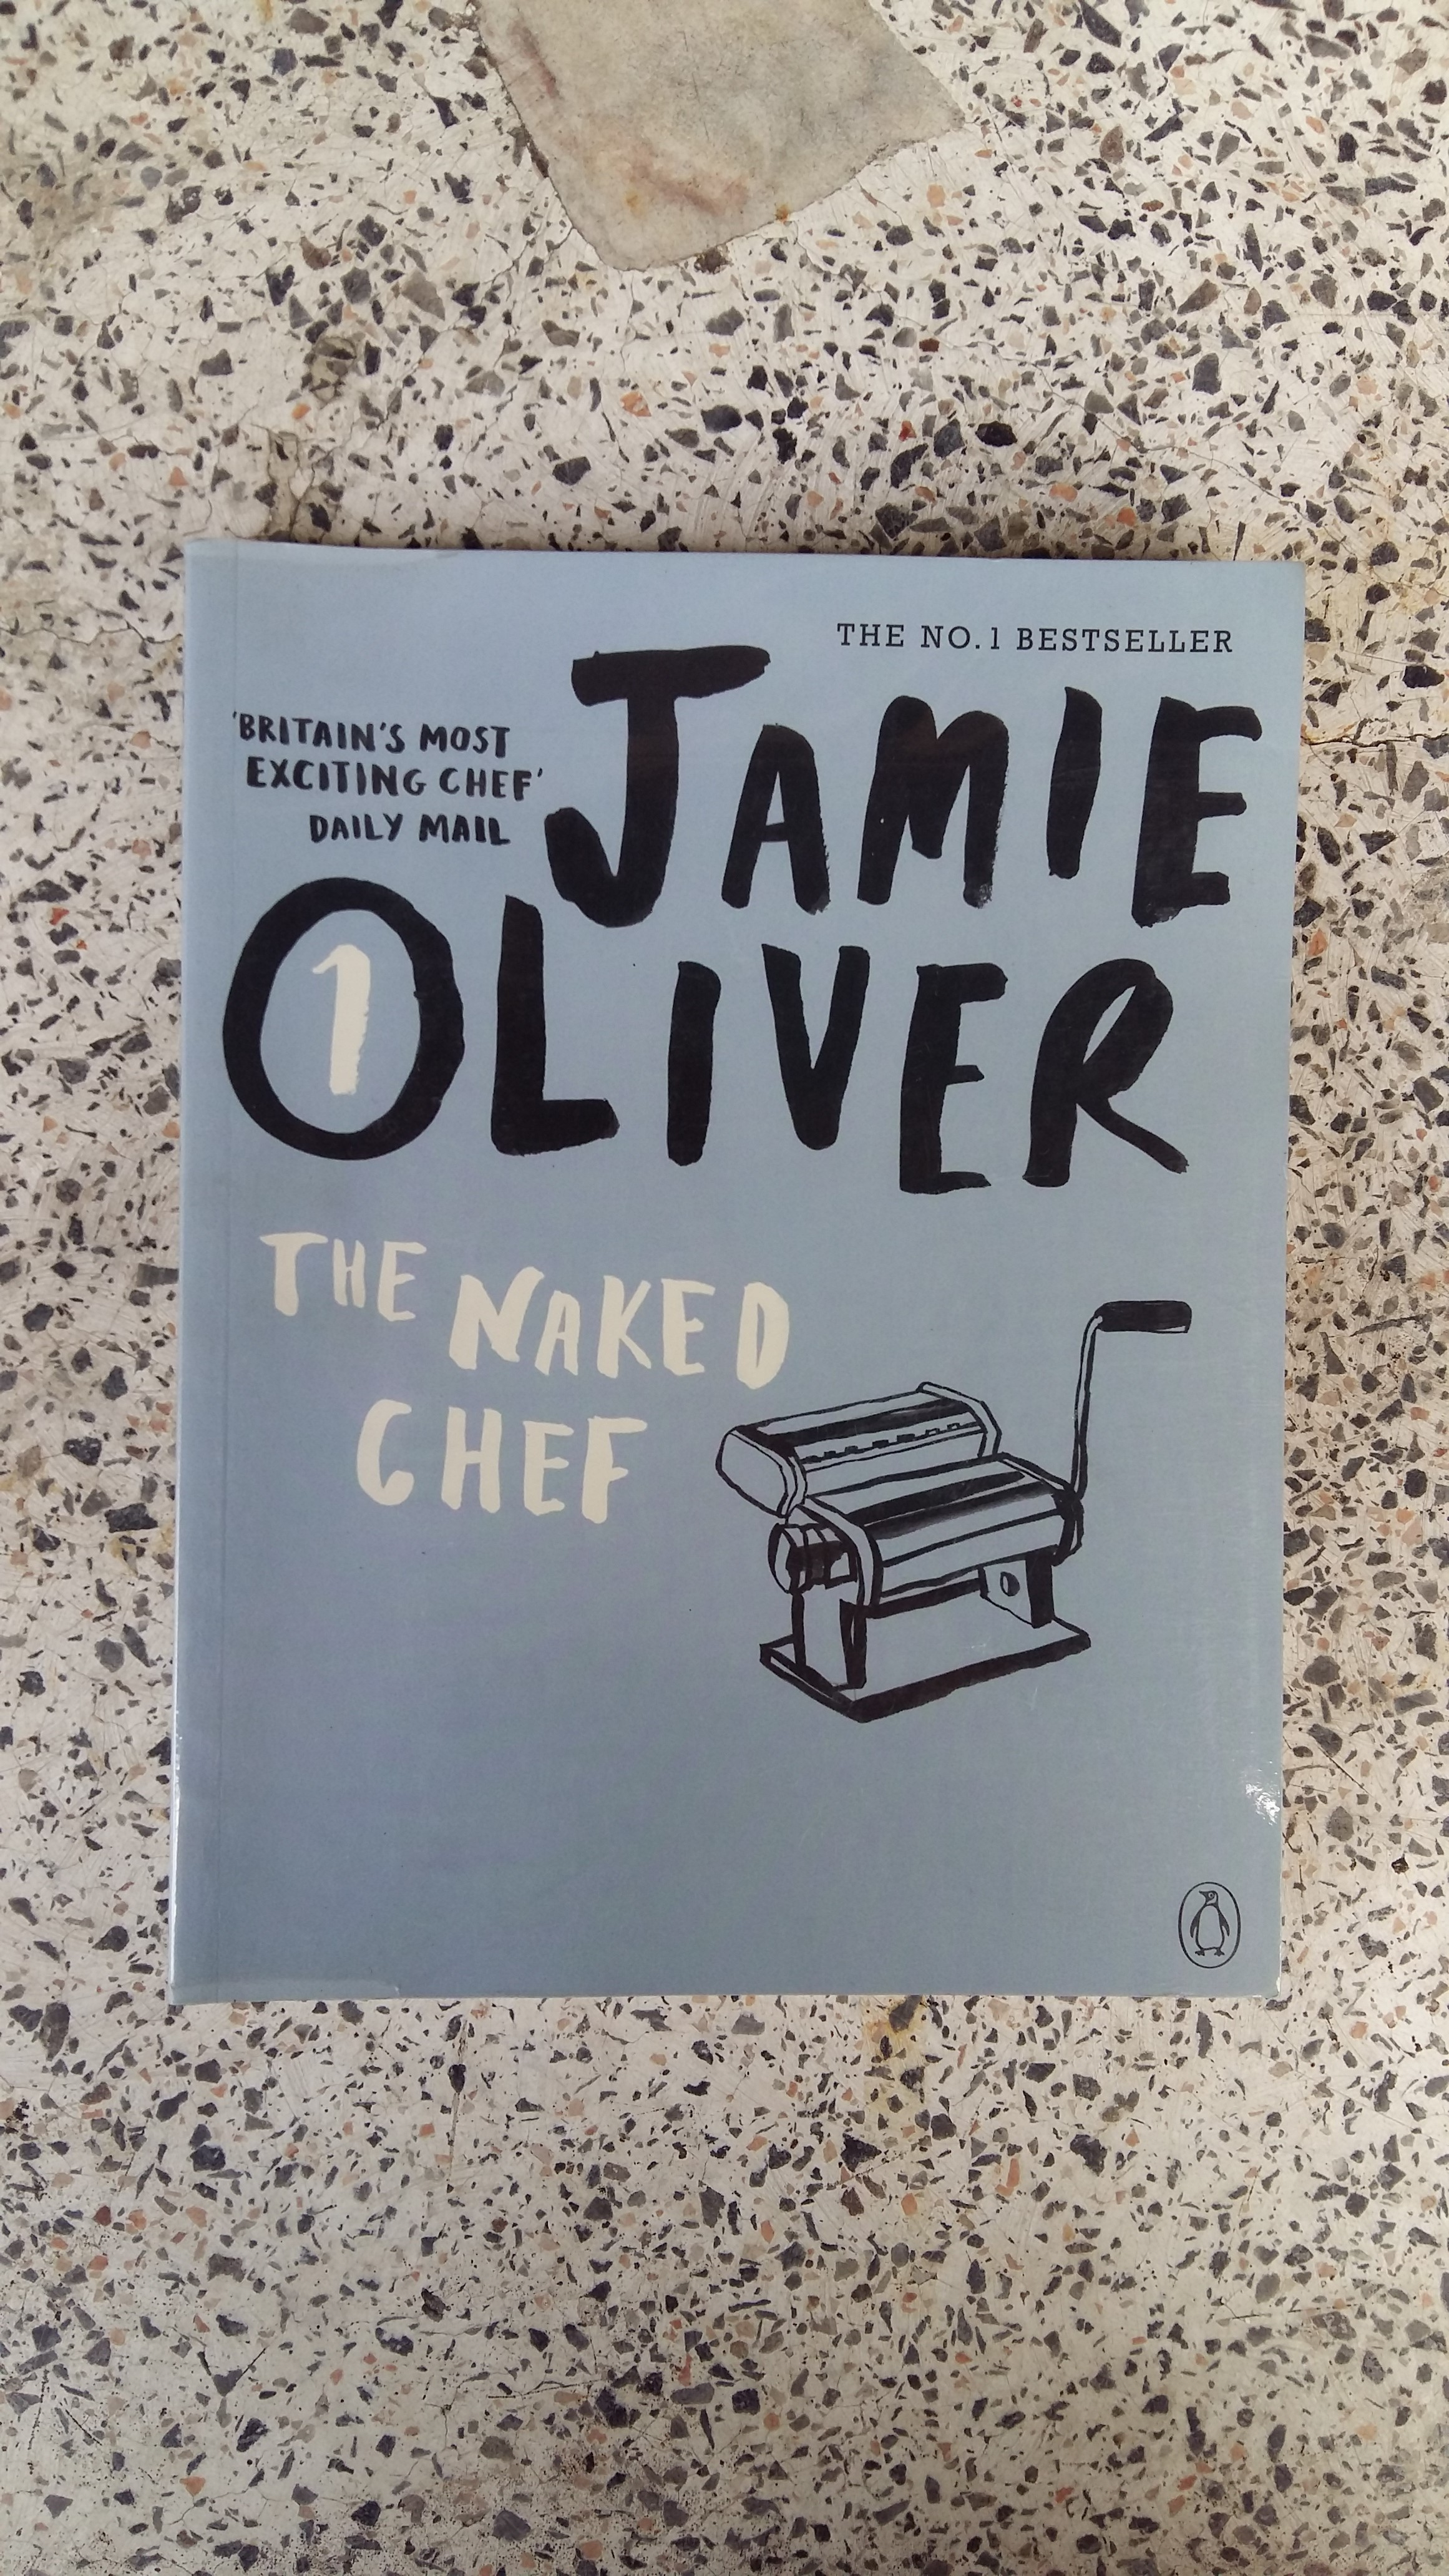 JAMIE 1 OLIVER / THE NAKED CHEF